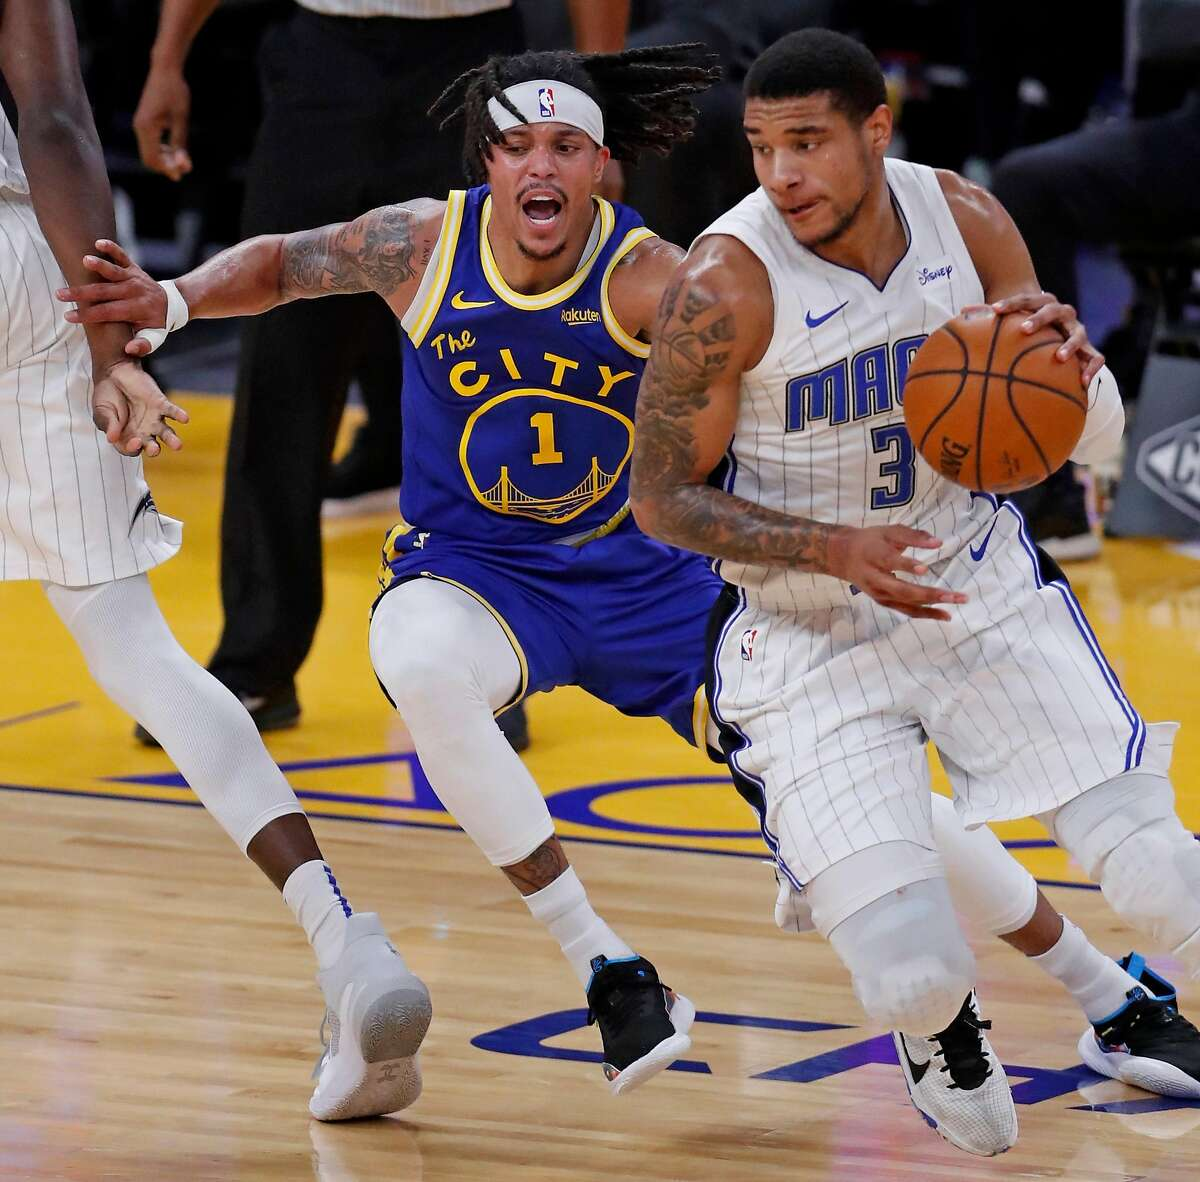 Warriors reserve guard Damion Lee has entered the NBA's COVID-19 health and safety protocols and will be sidelined 10-14 days.